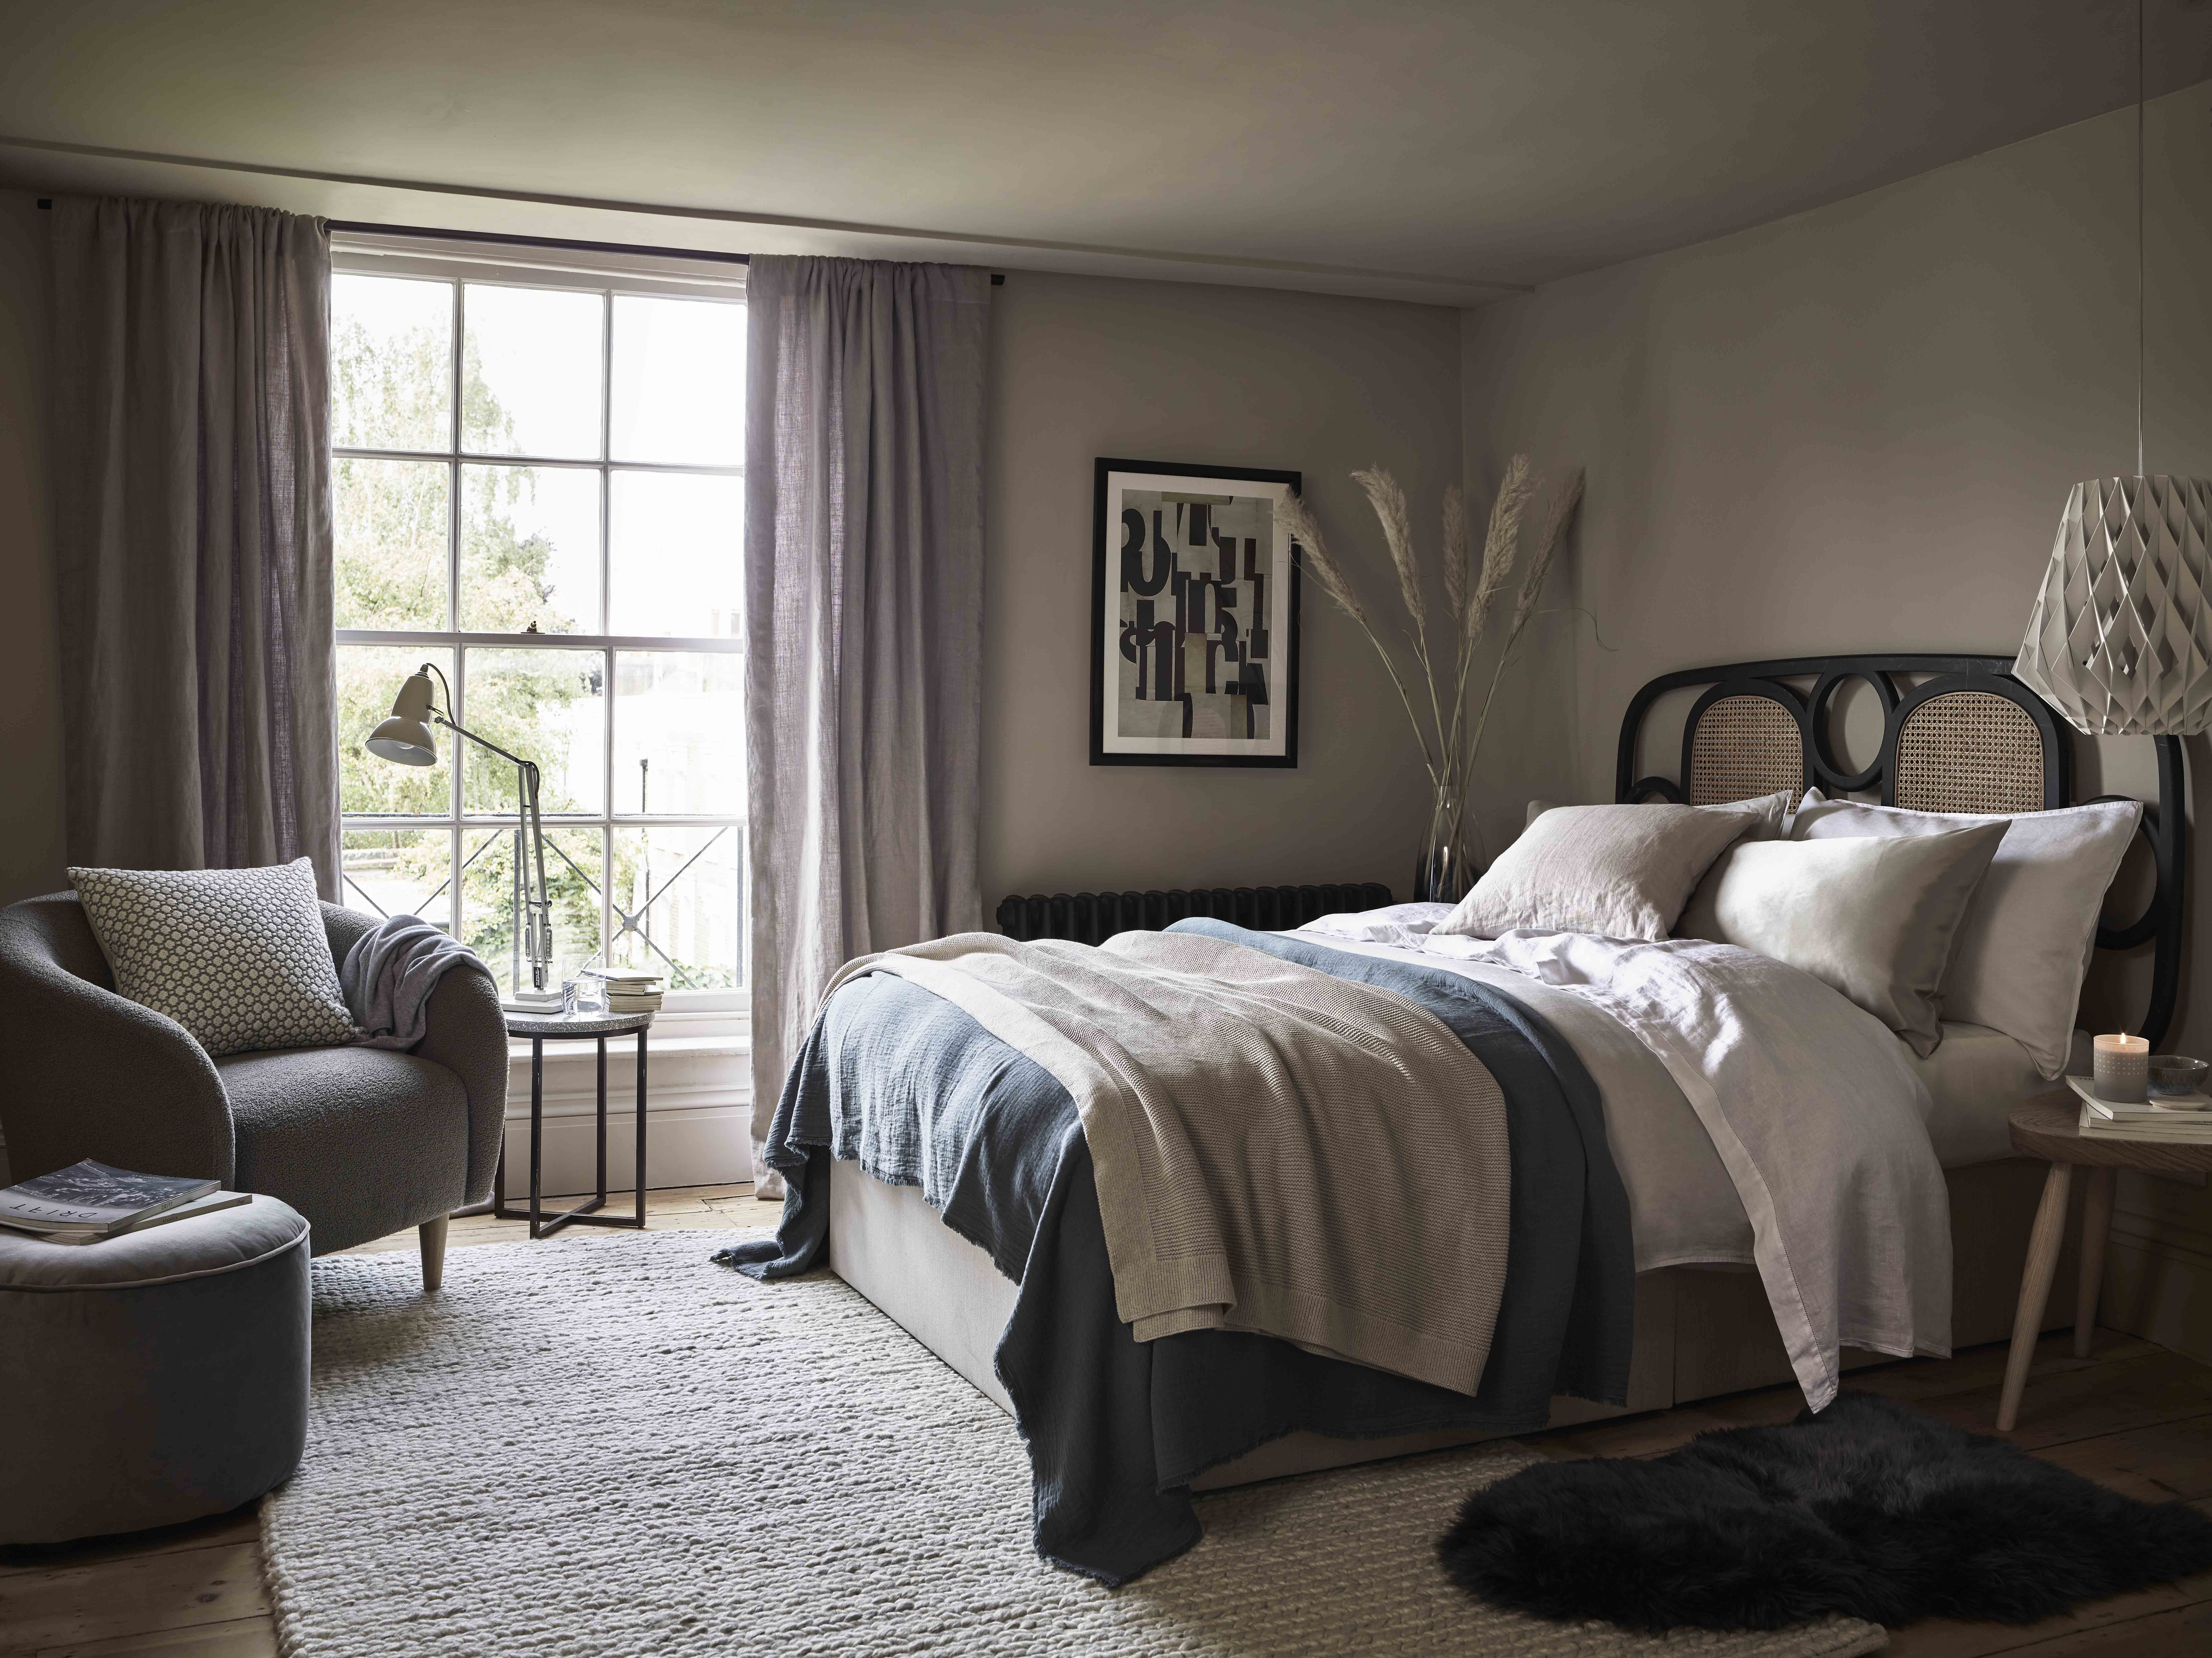 51 Bedroom Ideas Trends And Styling Tips To Create The Perfect Bedroom Design Real Homes